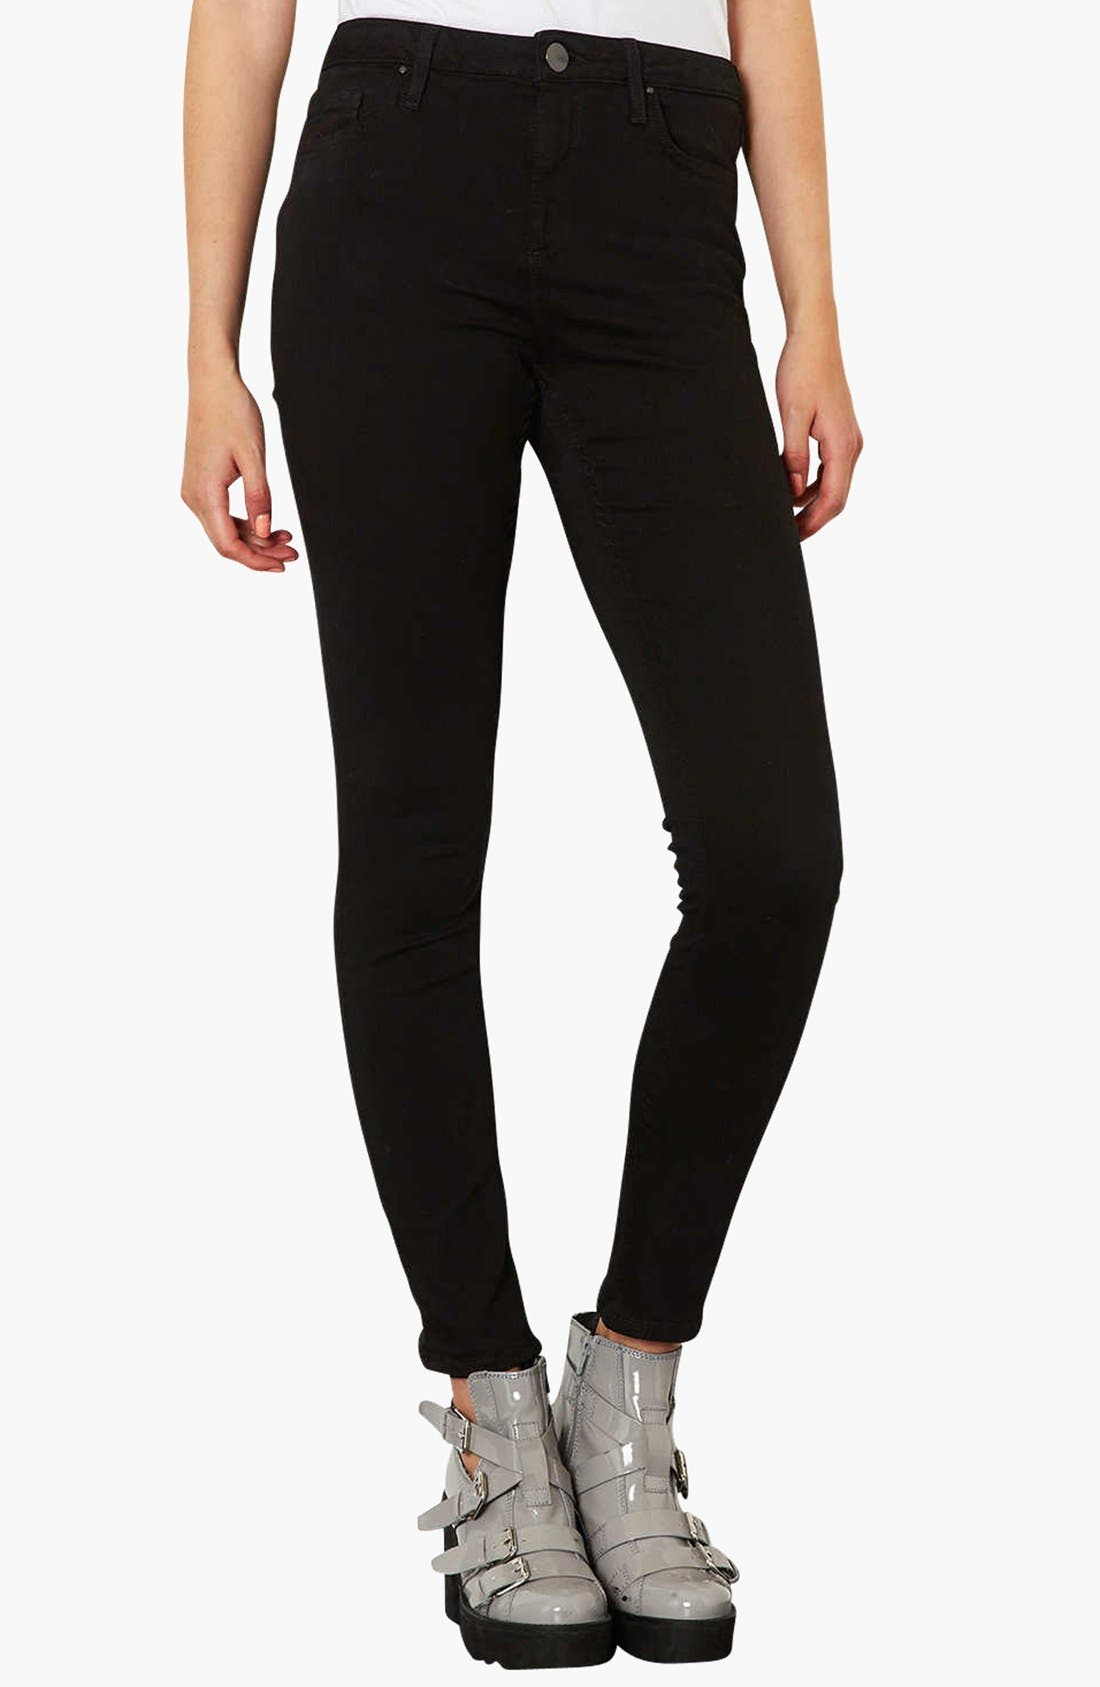 Main Image - Topshop Moto 'Jamie' High Rise Skinny Jeans (Regular, Short & Long)